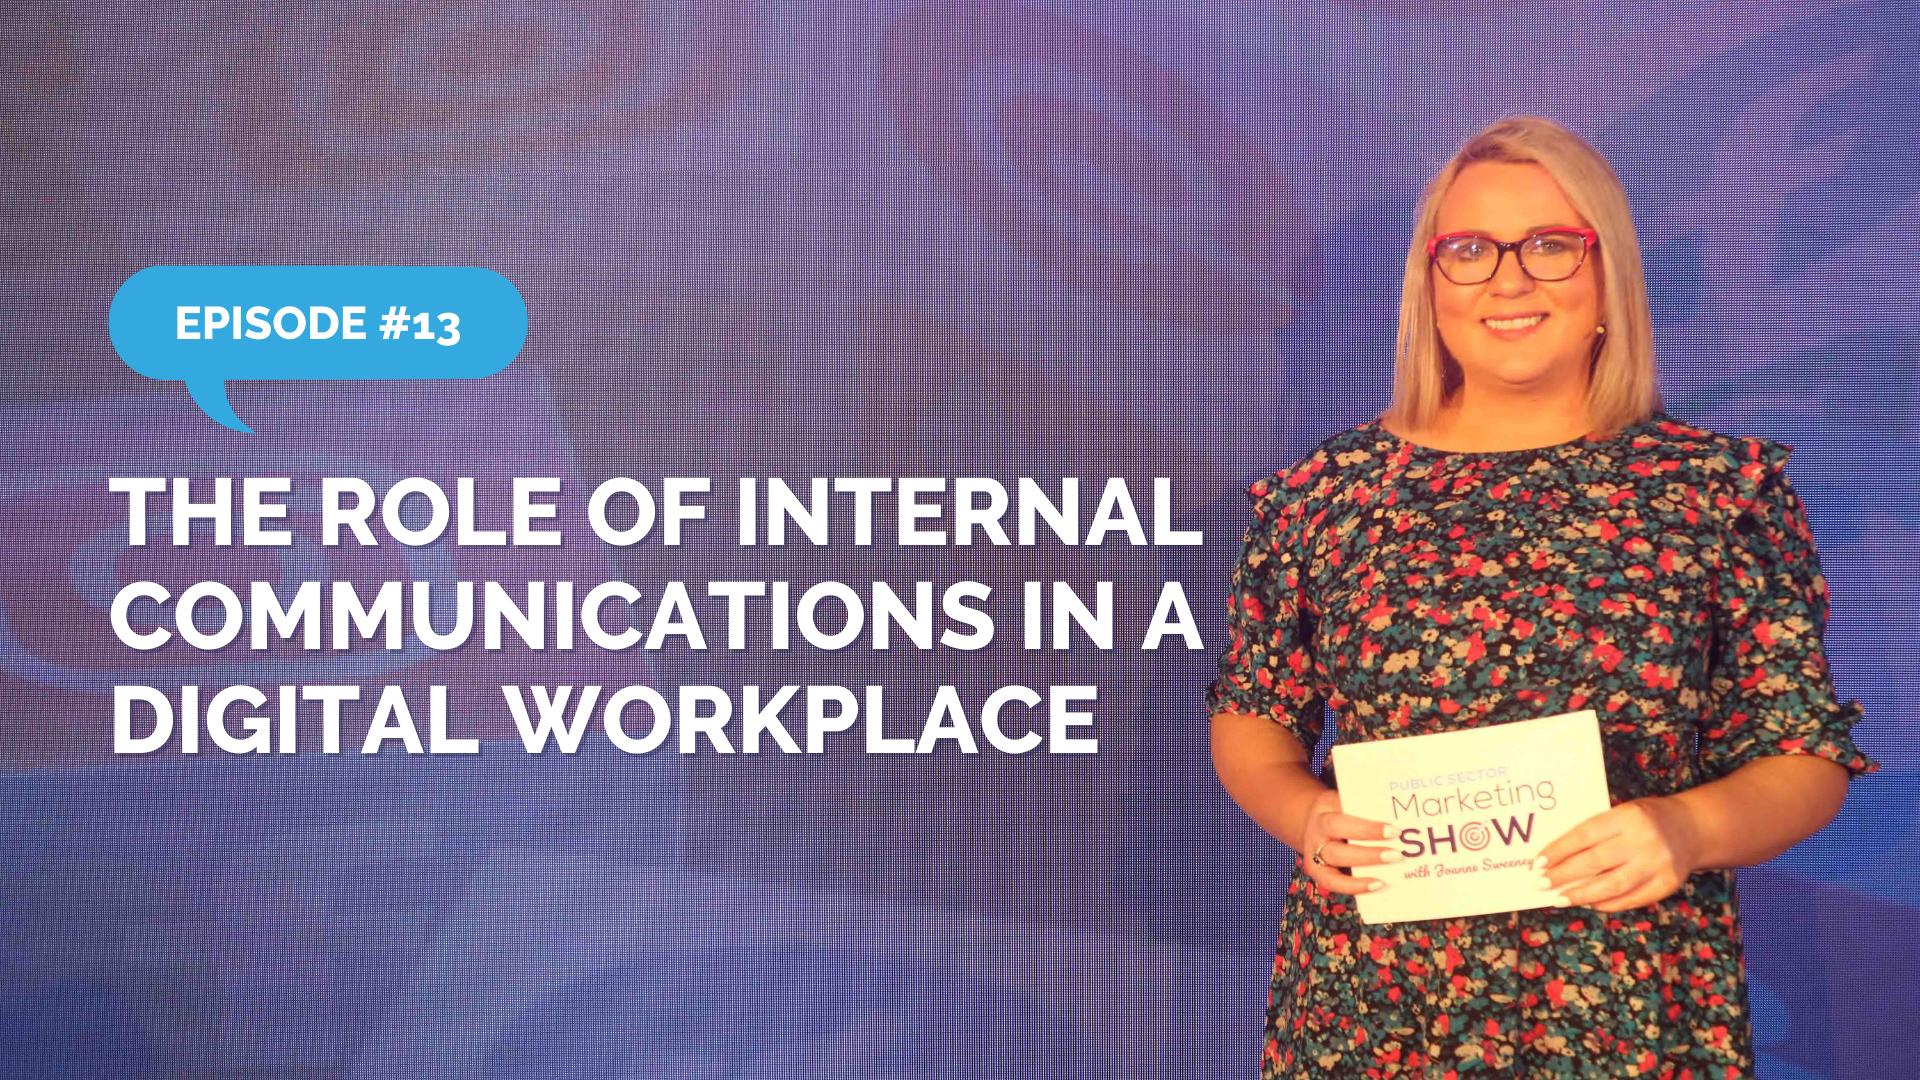 Episode 13 - The Role of Internal Communications in the Digital Workplace